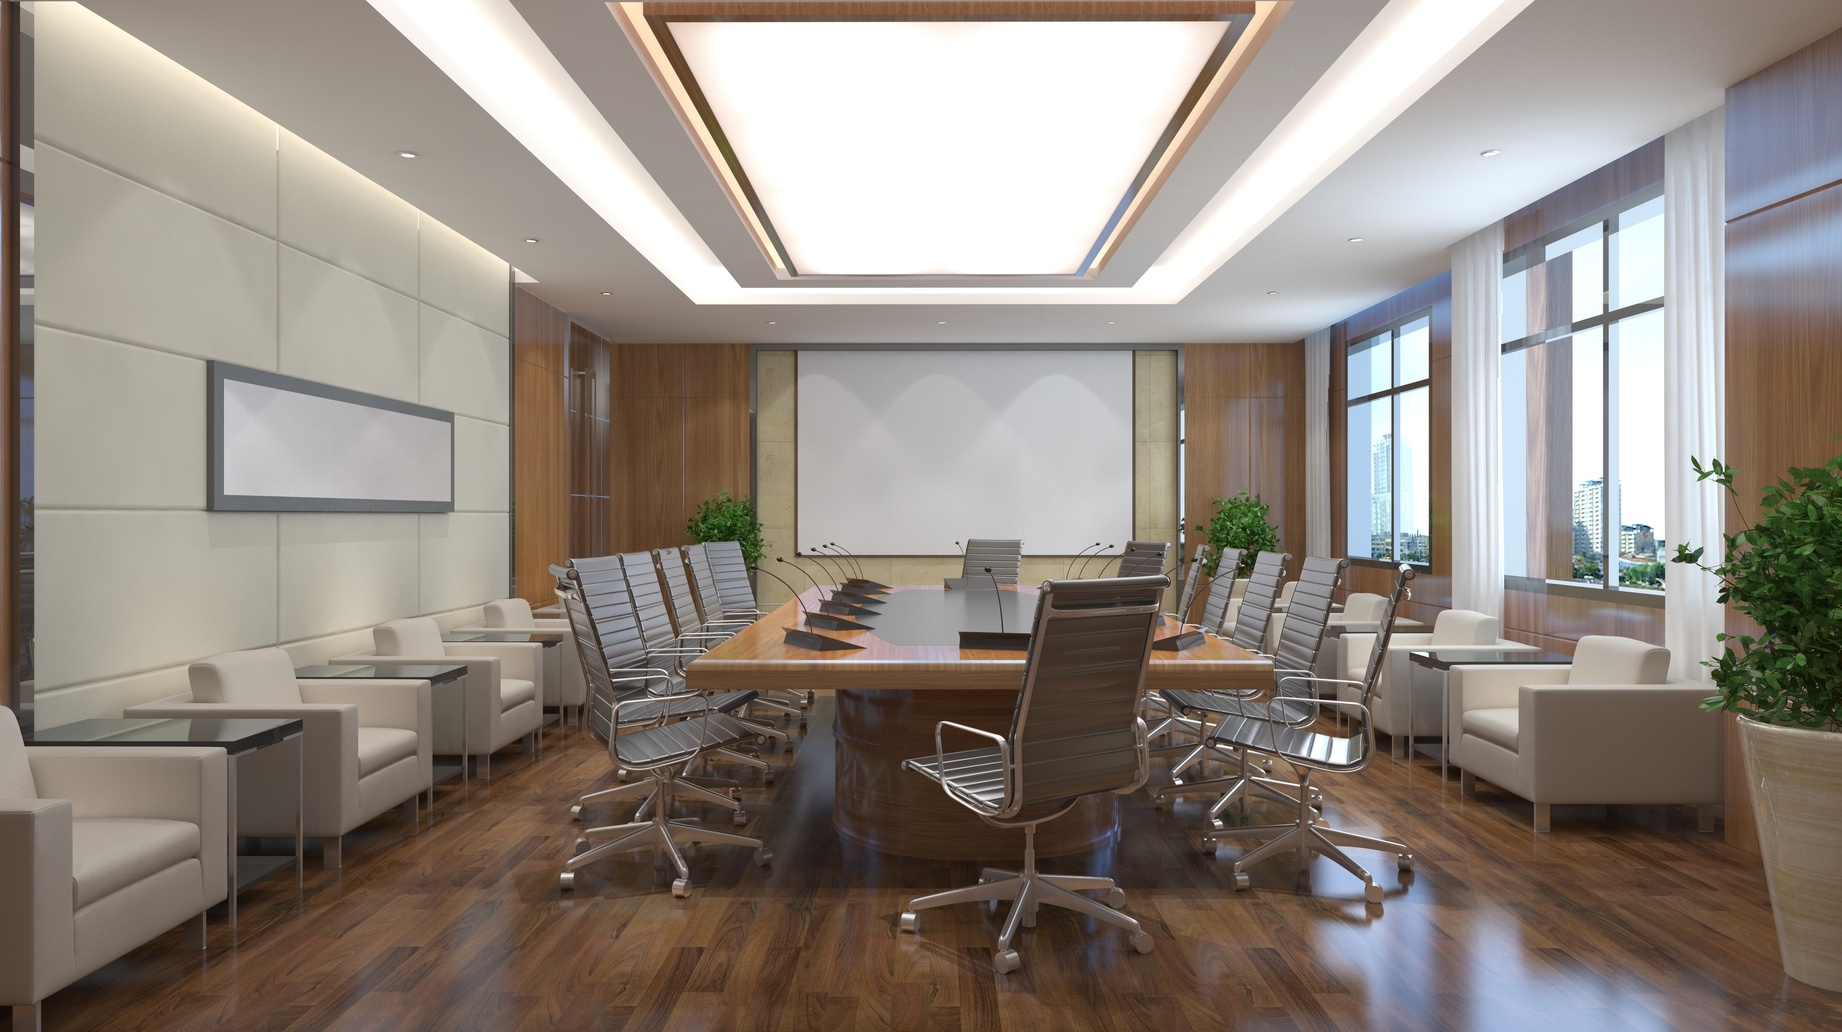 Photorealistic 3d render of a office